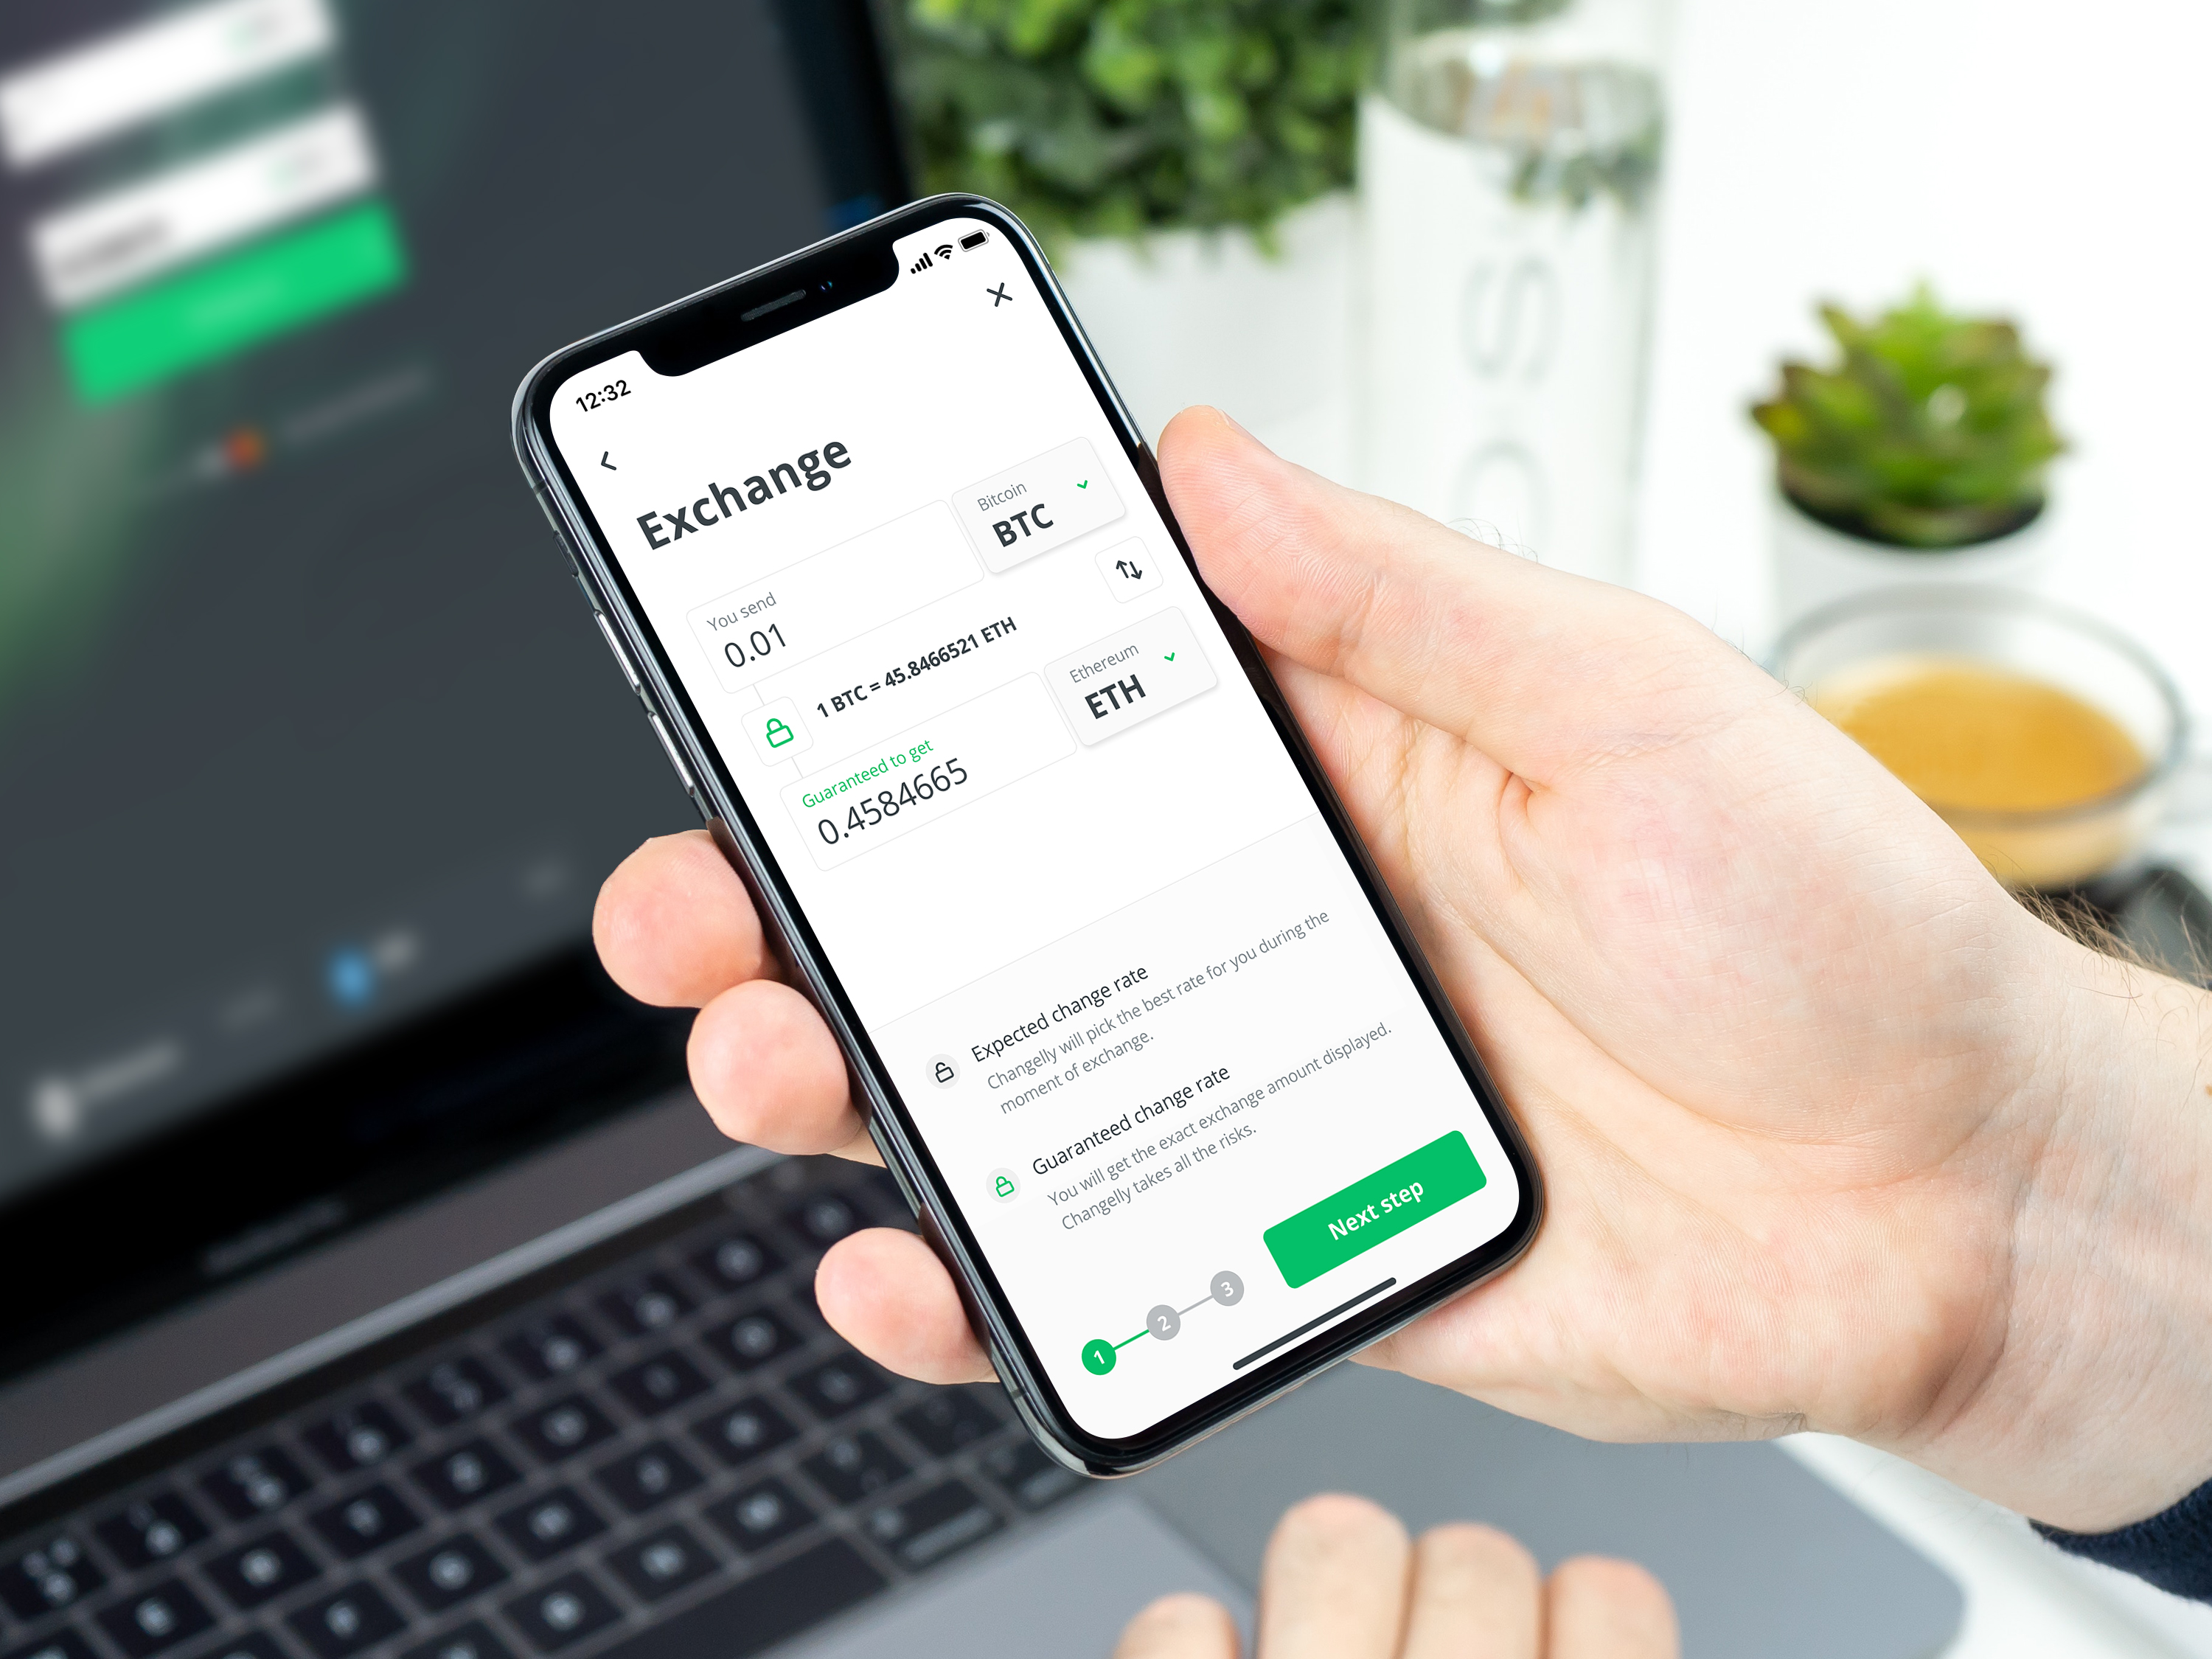 Exchange crypto on the go with changelly